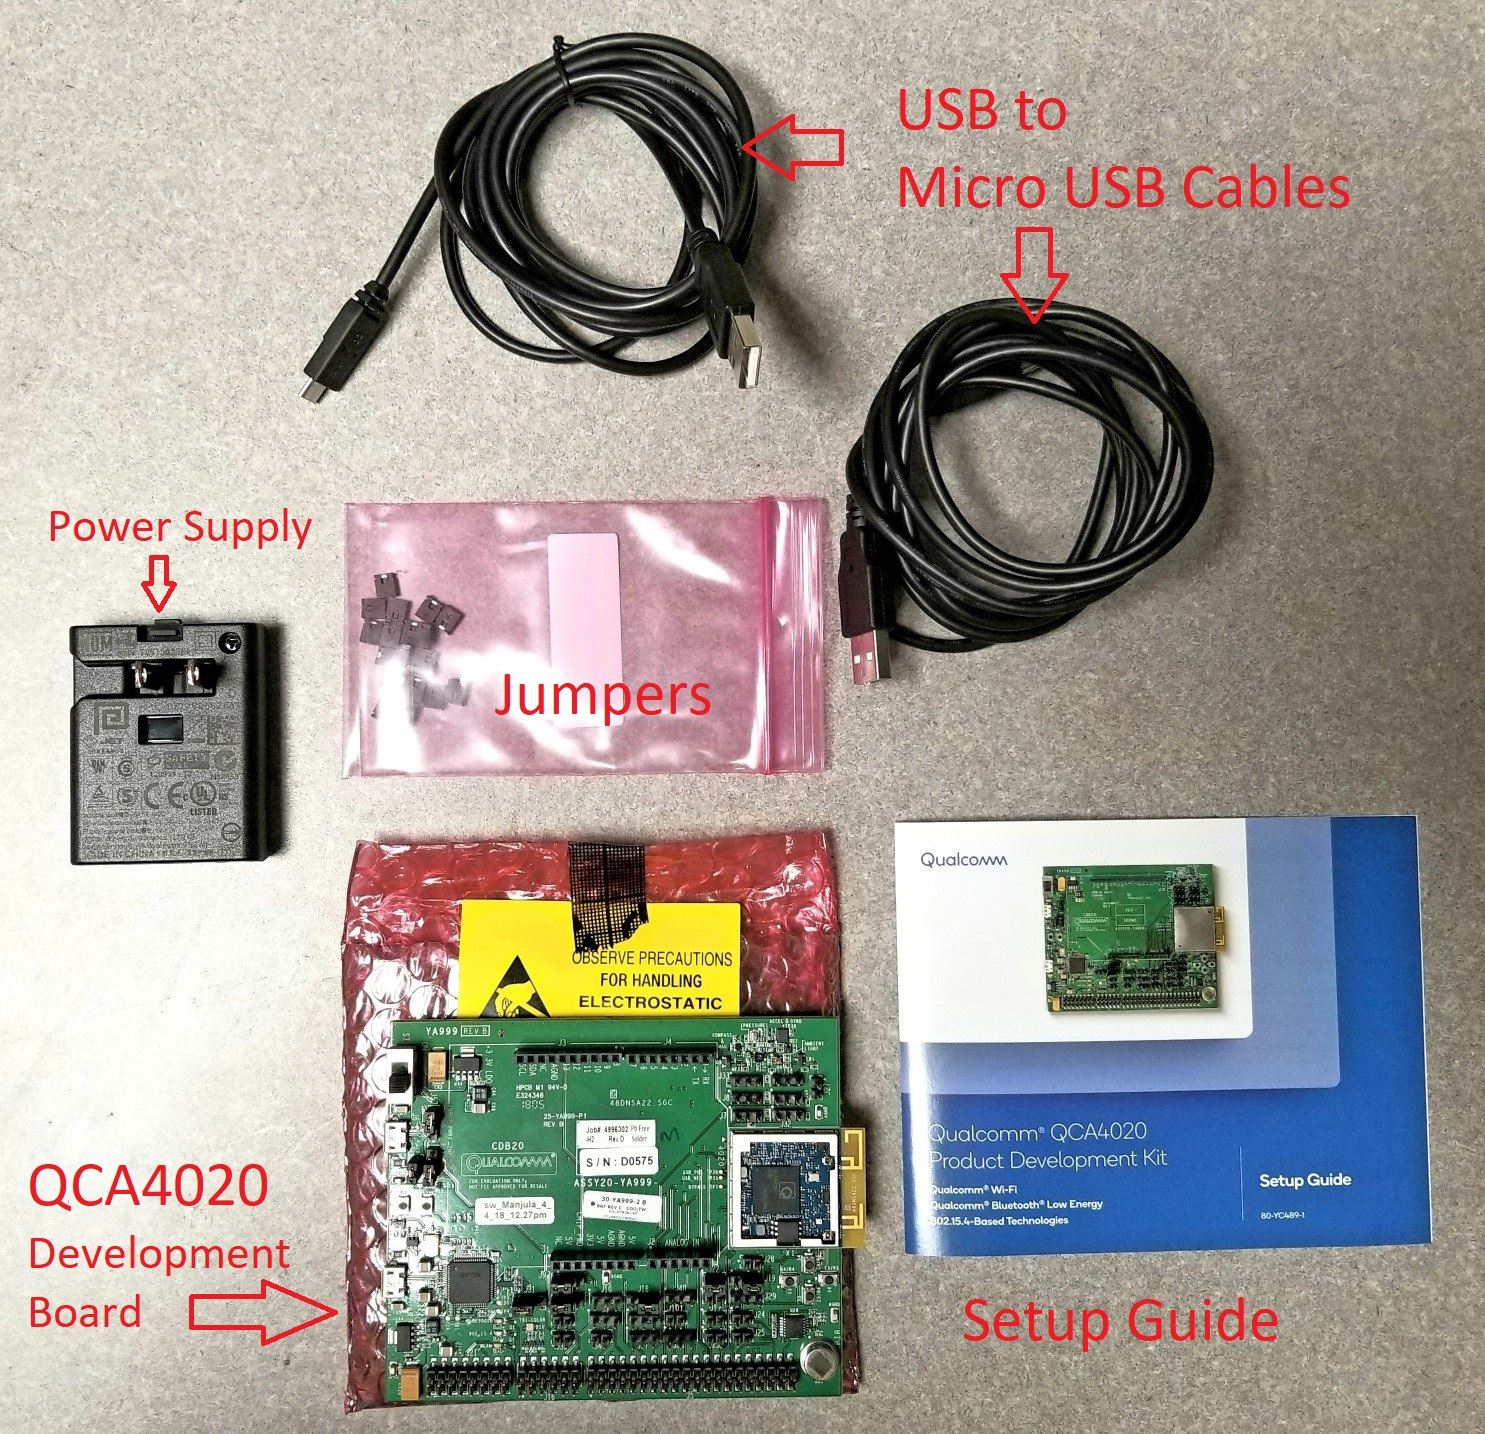 Qca4020 Ble Standalone Mode Qualcomm Developer Network Port Usb Hub Wiring Diagram Isp Solving The Only Chicken Contents Of Qca 4020 Development Kit As Seen Above Include Board